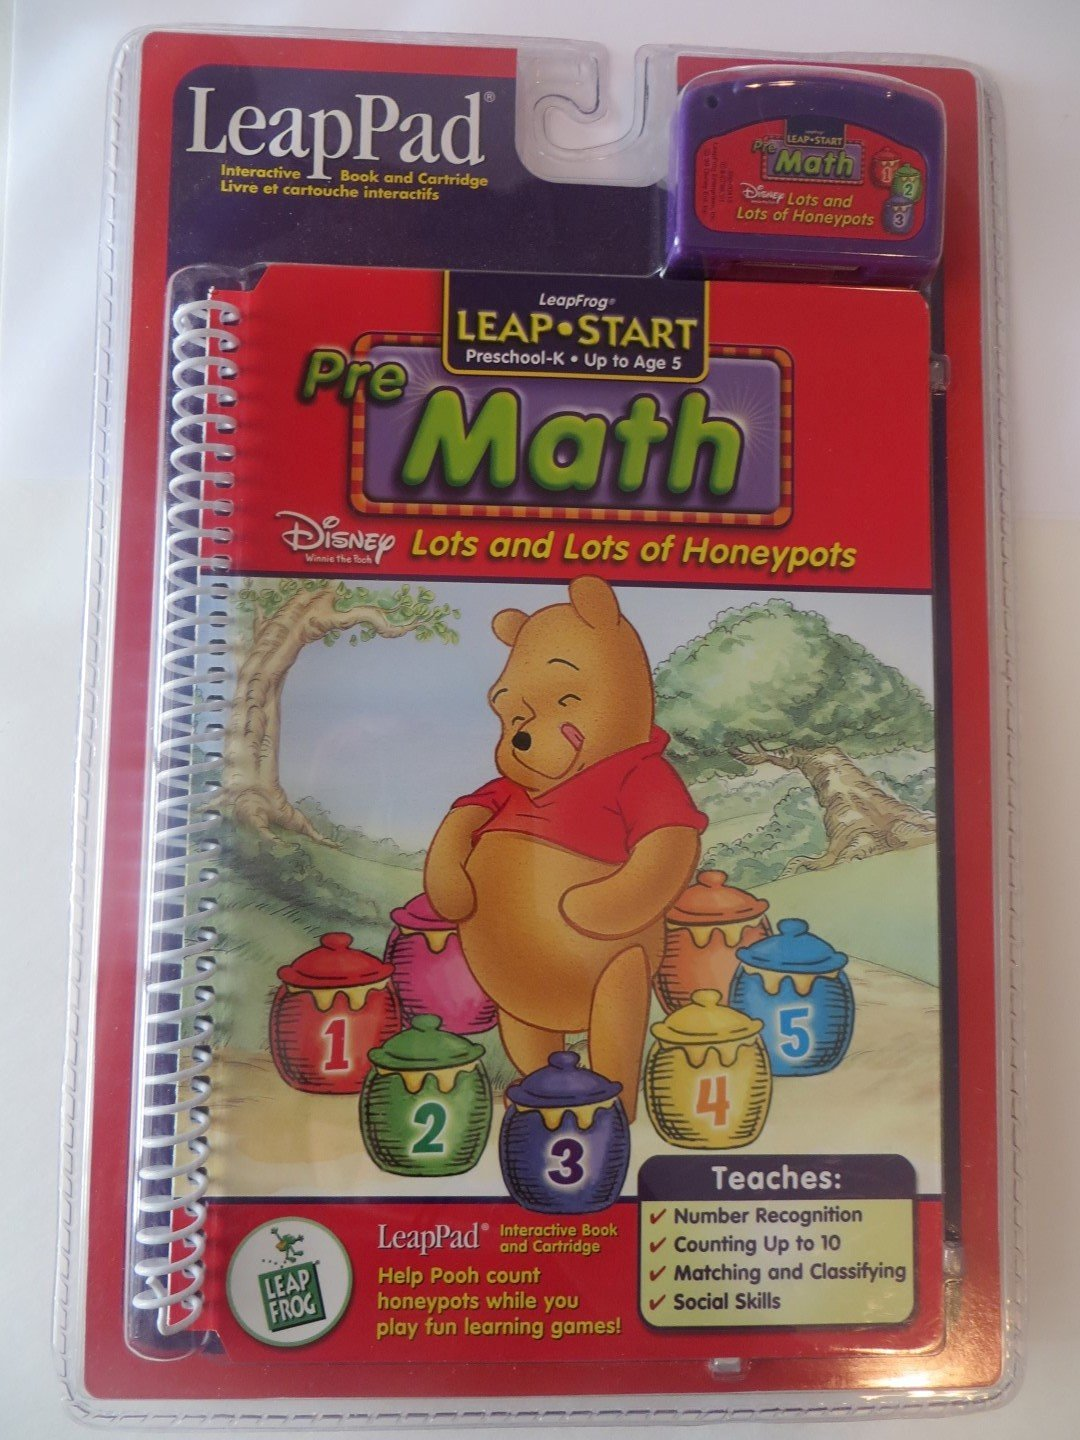 Leapfrog LeapPad Leap Start Preschool-K Pre-math with Disney Winnie The Pooh Lots and Lots of Honeypots